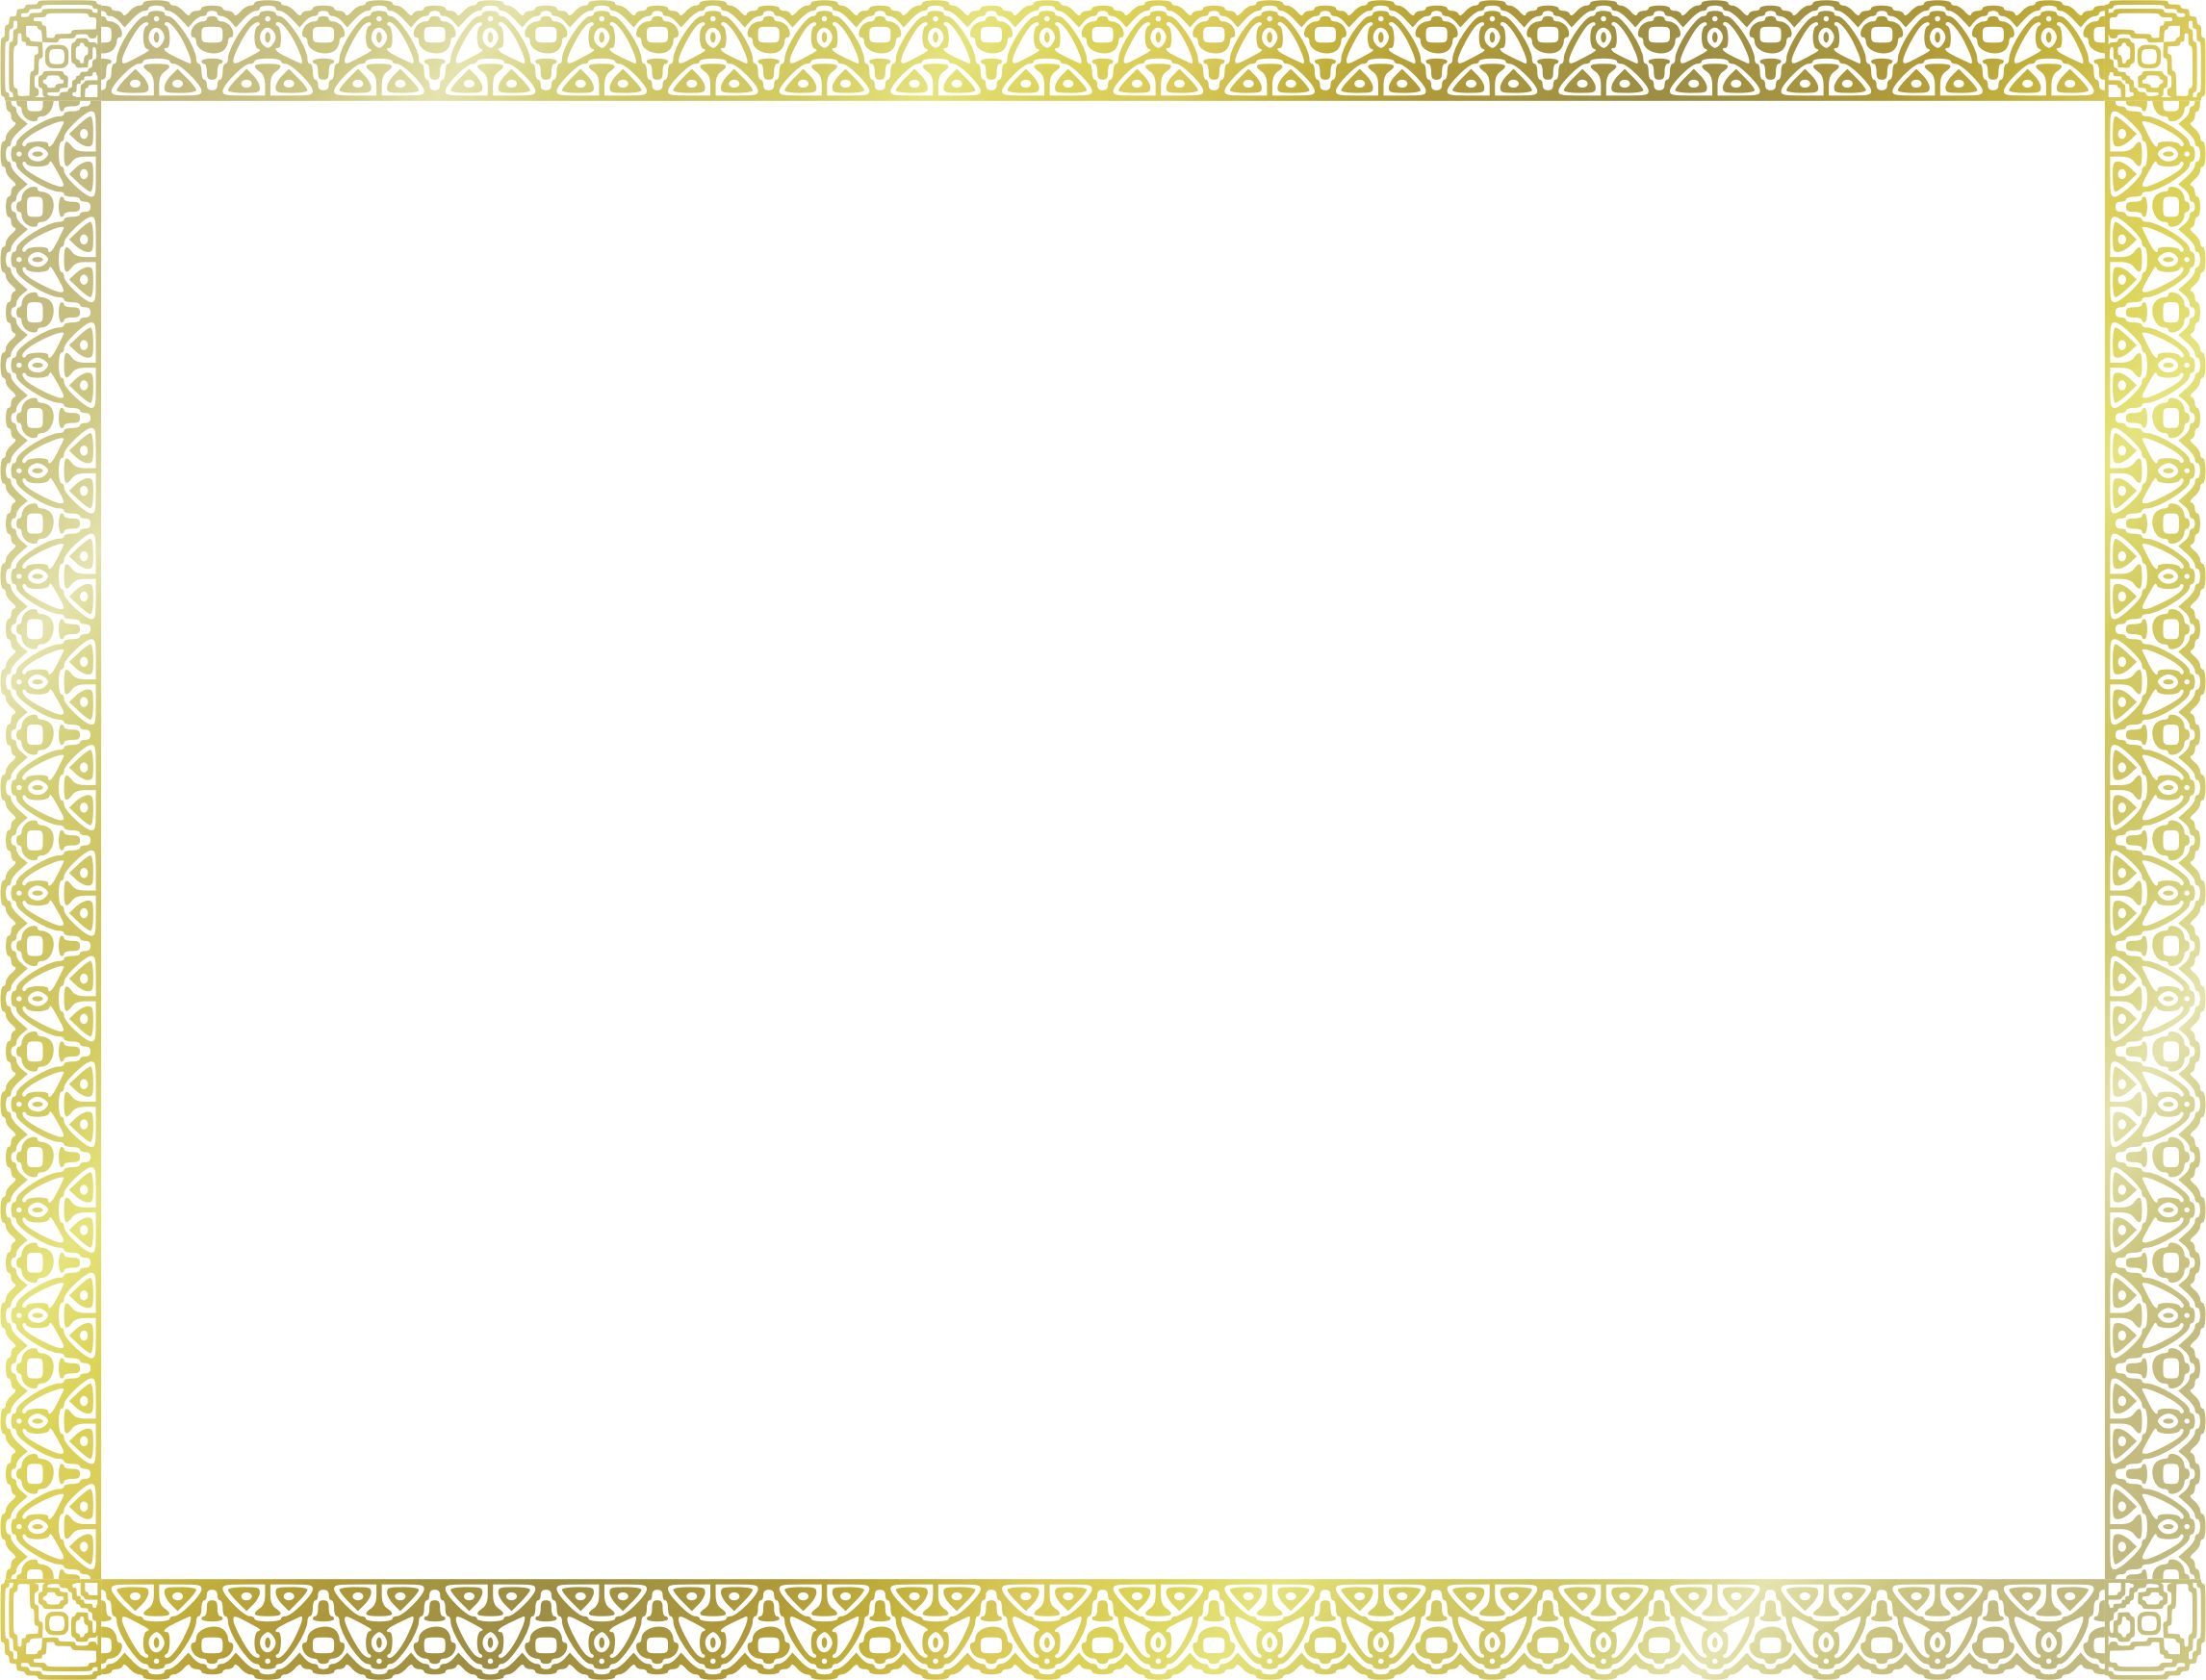 Certificate border png. Clipart us size big